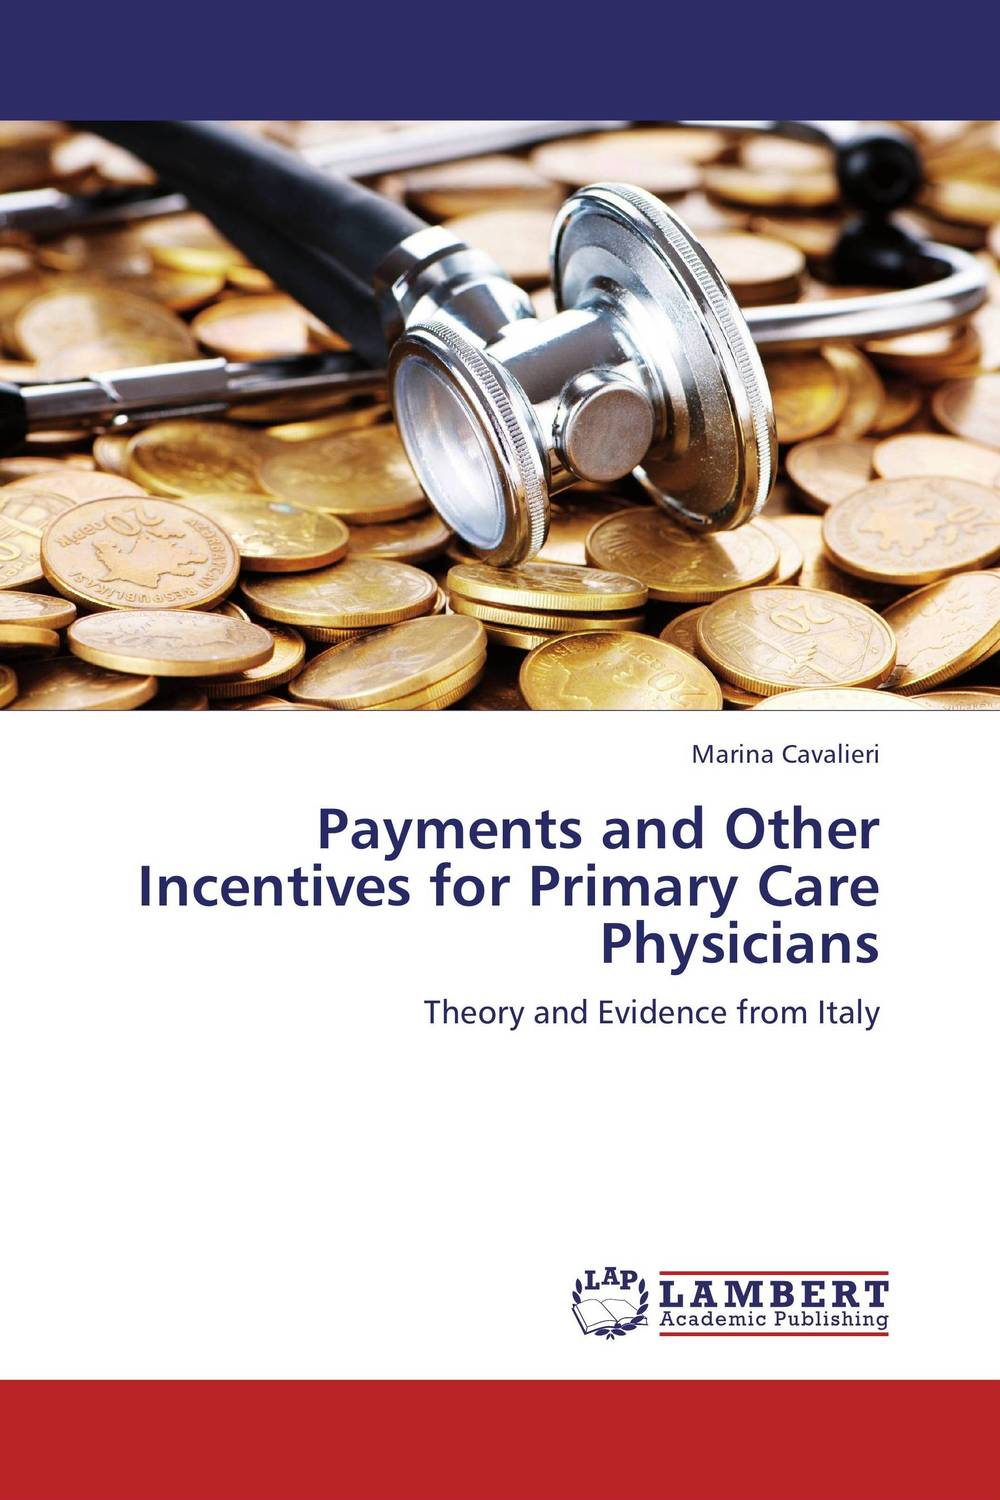 Payments and Other Incentives for Primary Care Physicians jimmy evens equitable life payments bill